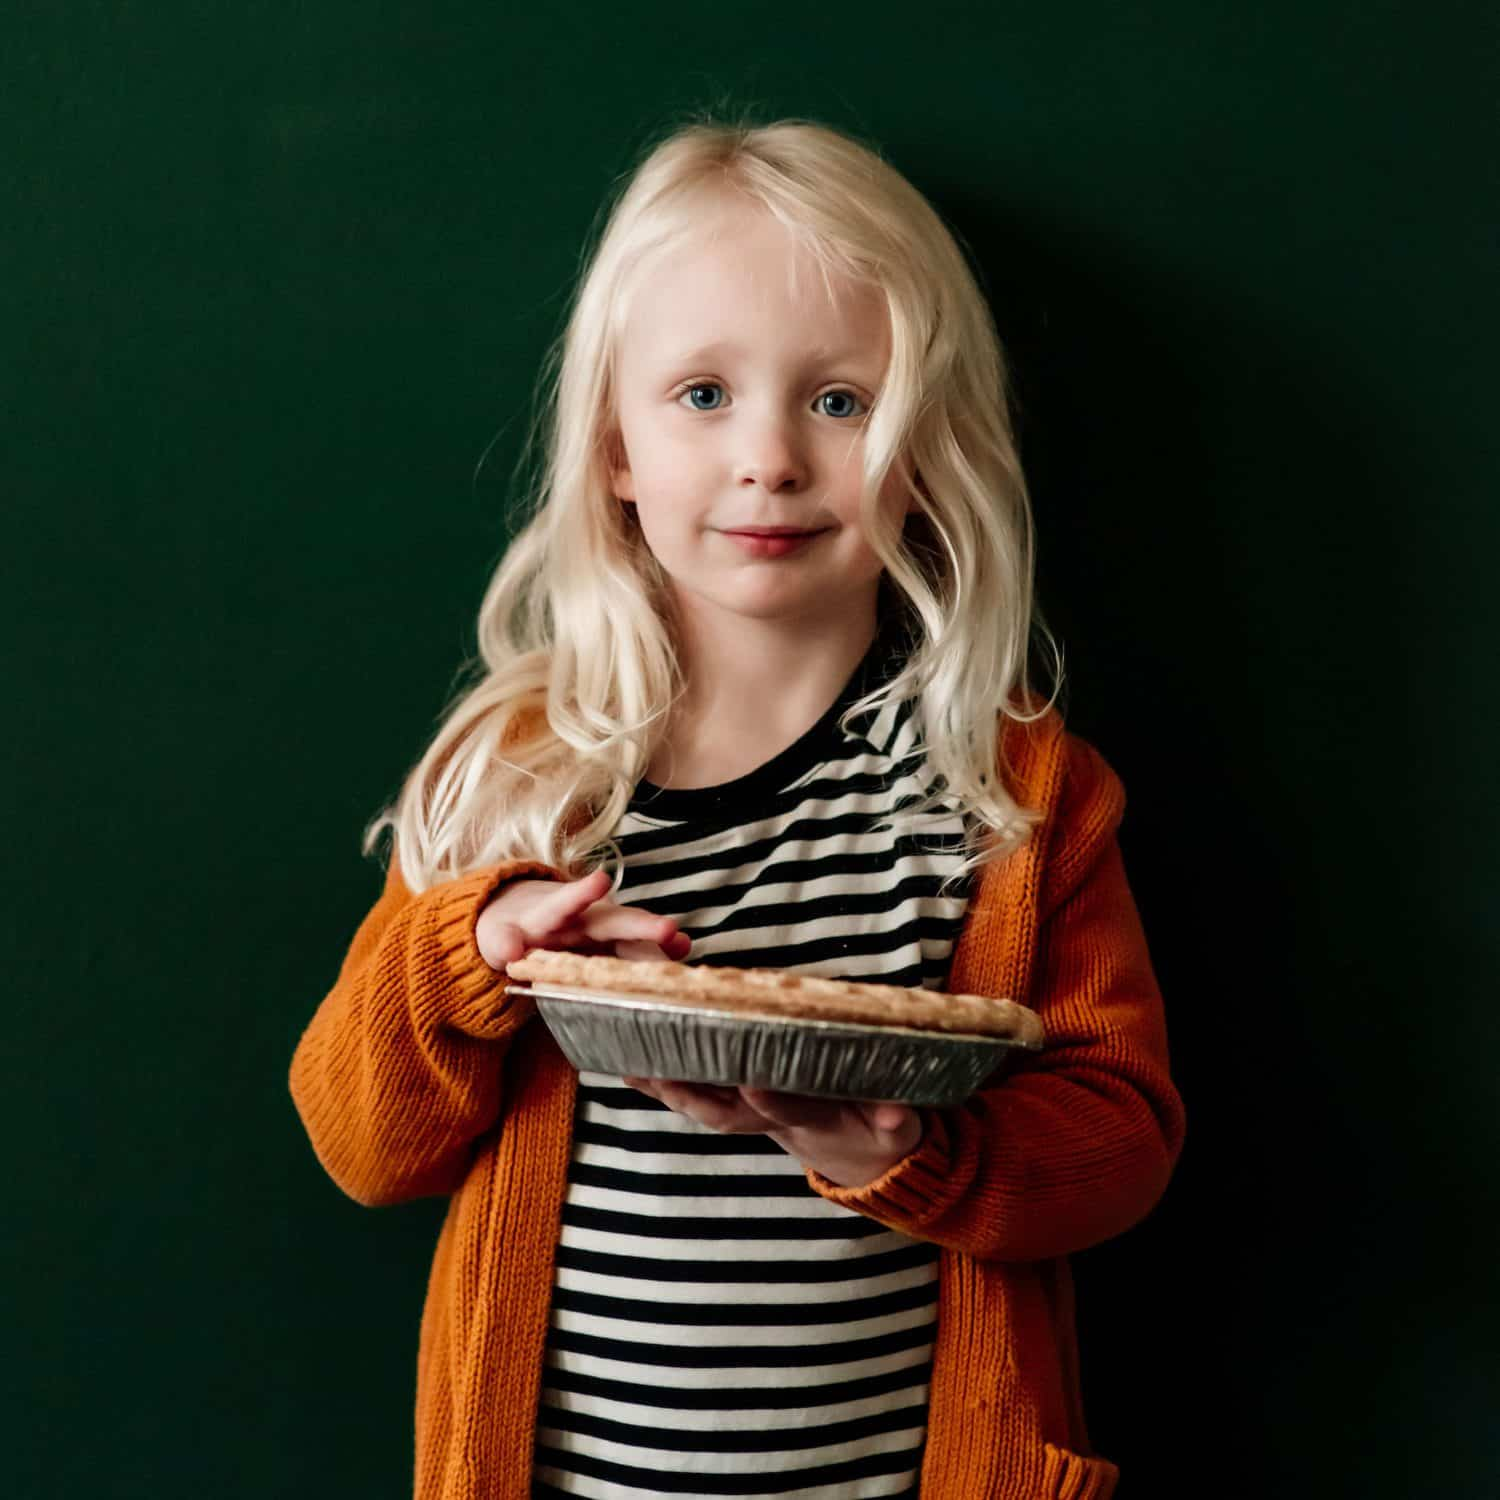 Little girl in an orange sweater smiling while holding a pie